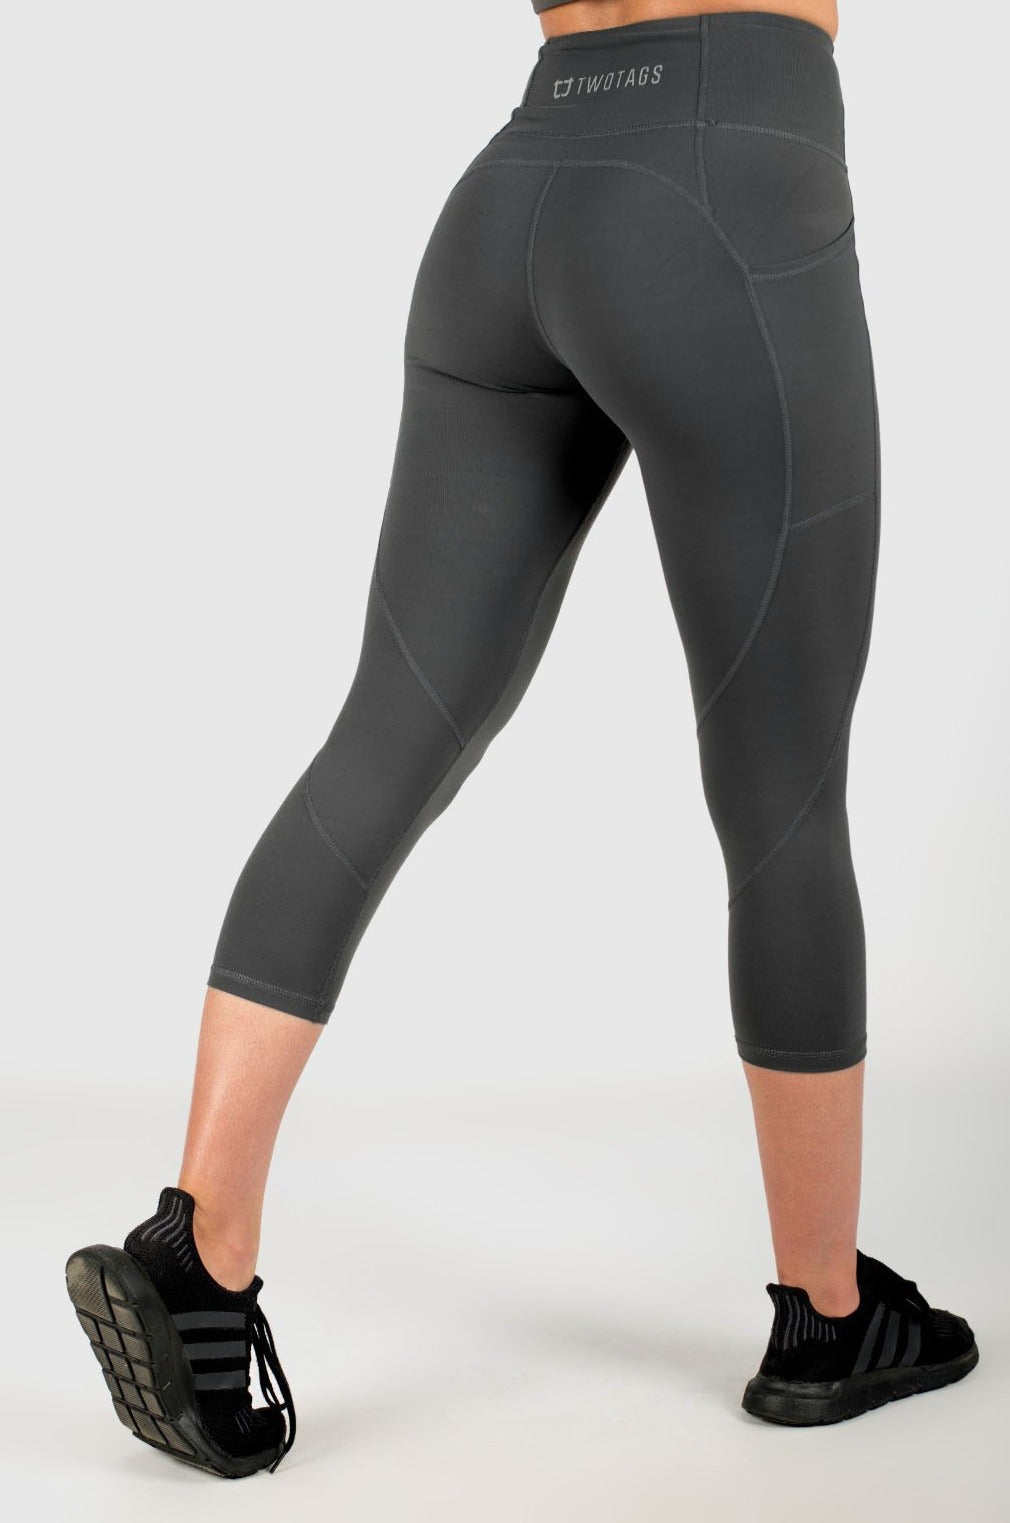 Sweetheart 7/8 Highwaisted Leggings - Slate Grey